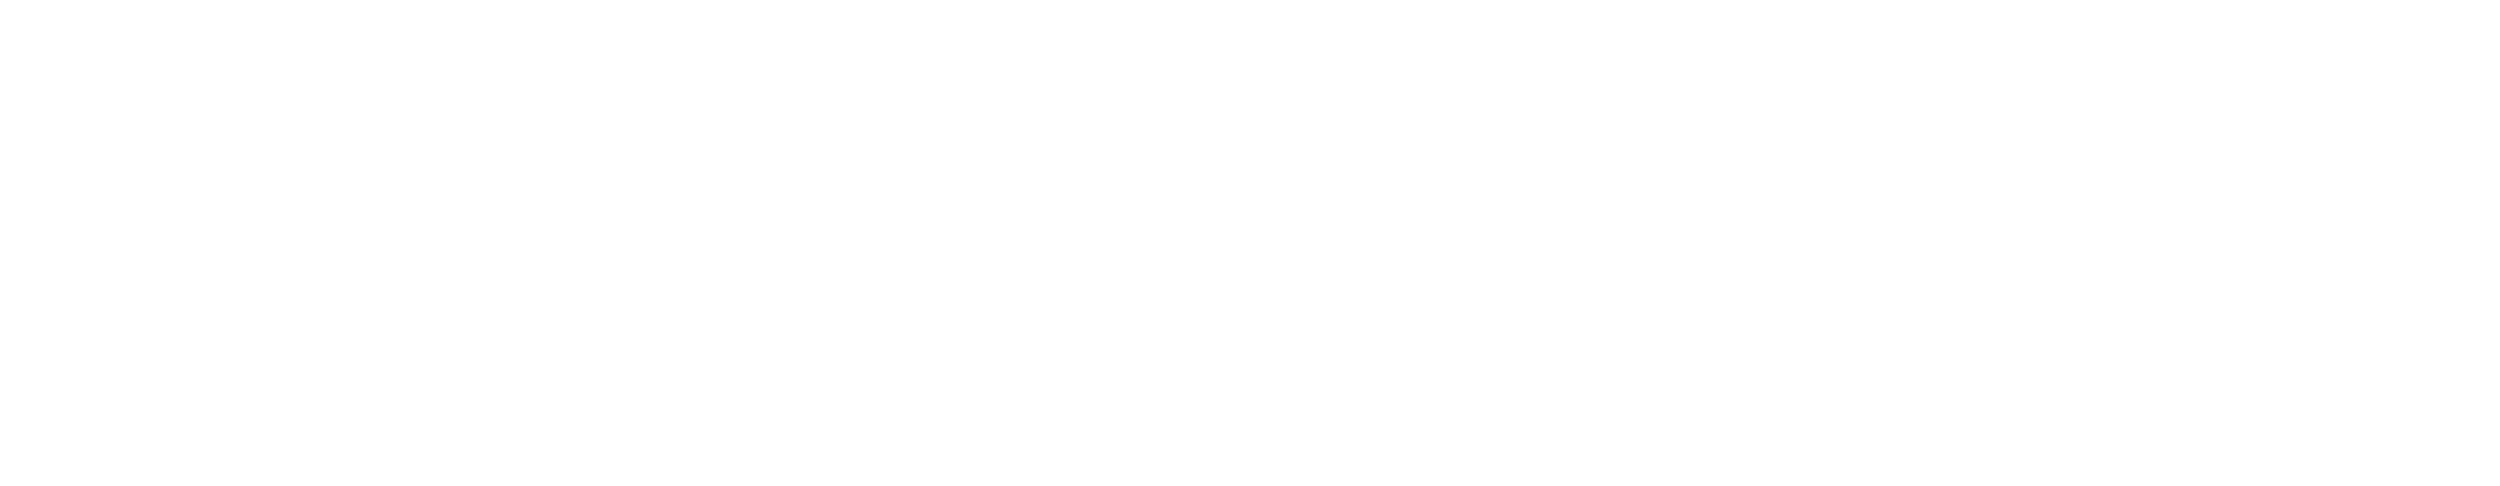 5thwall_logo_w.png